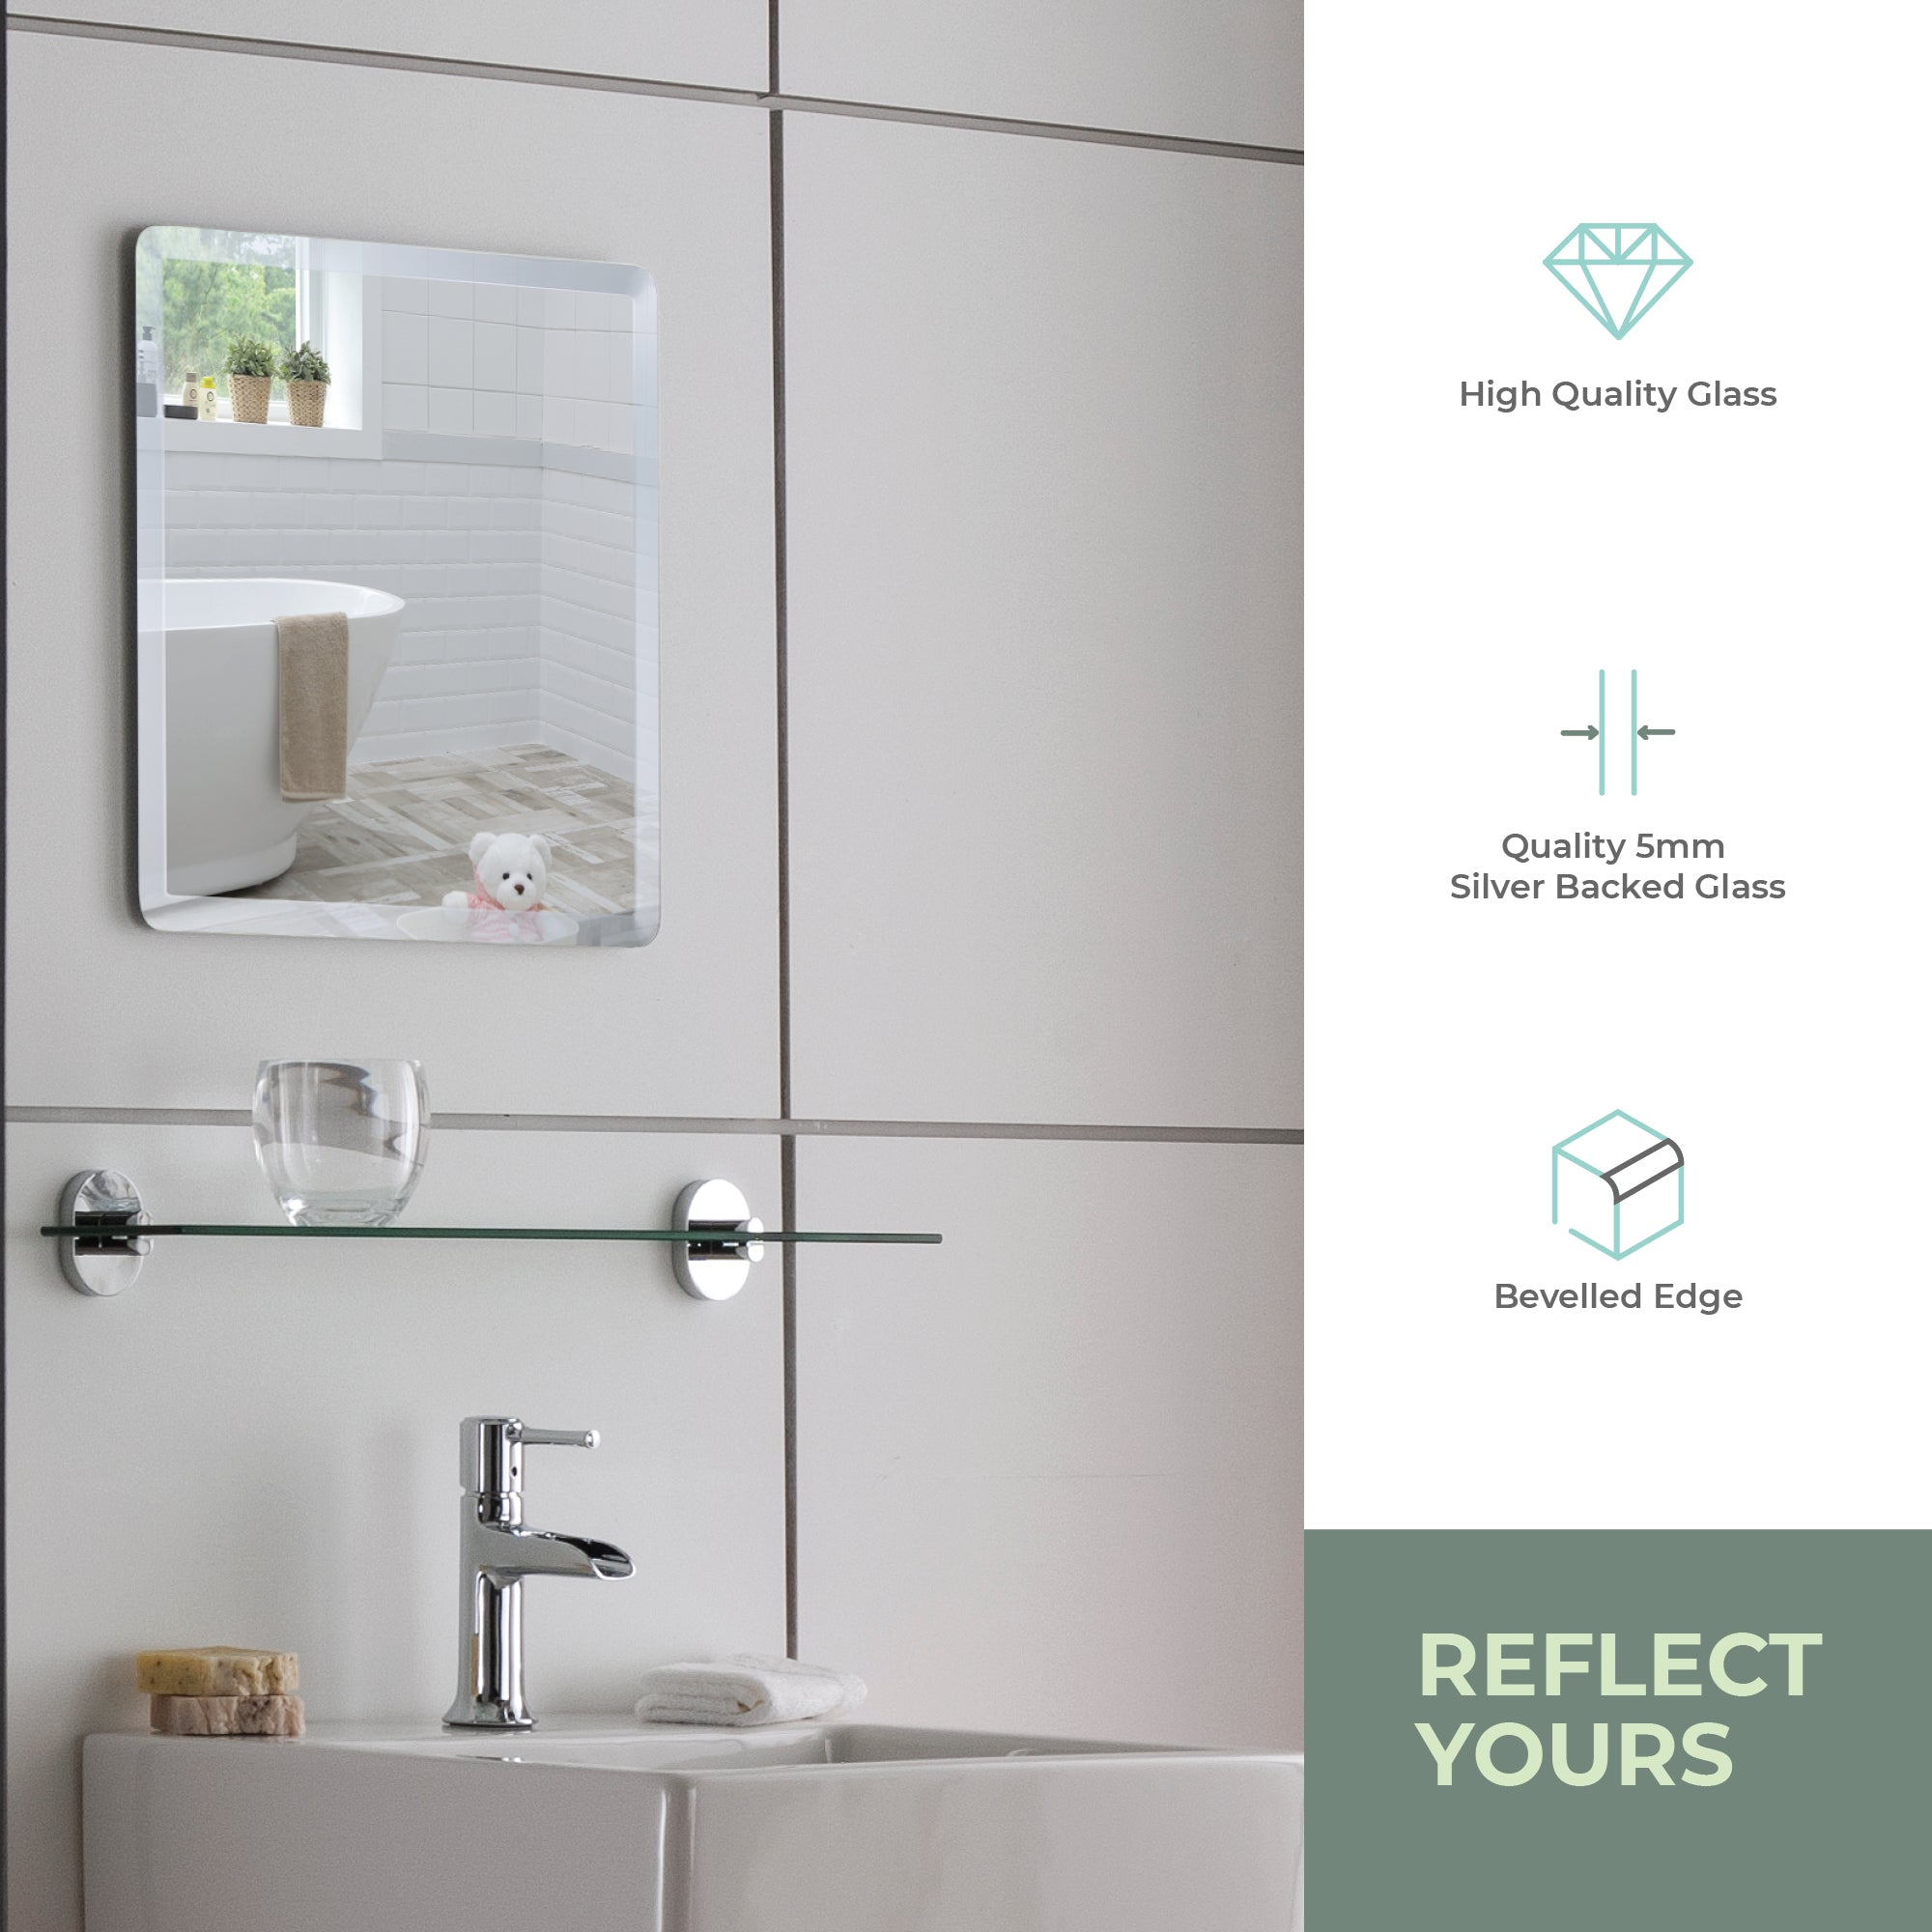 Simple Design Bathroom Wall Mirror ES1030 40 x 40cm Size 40Hx40Wcm